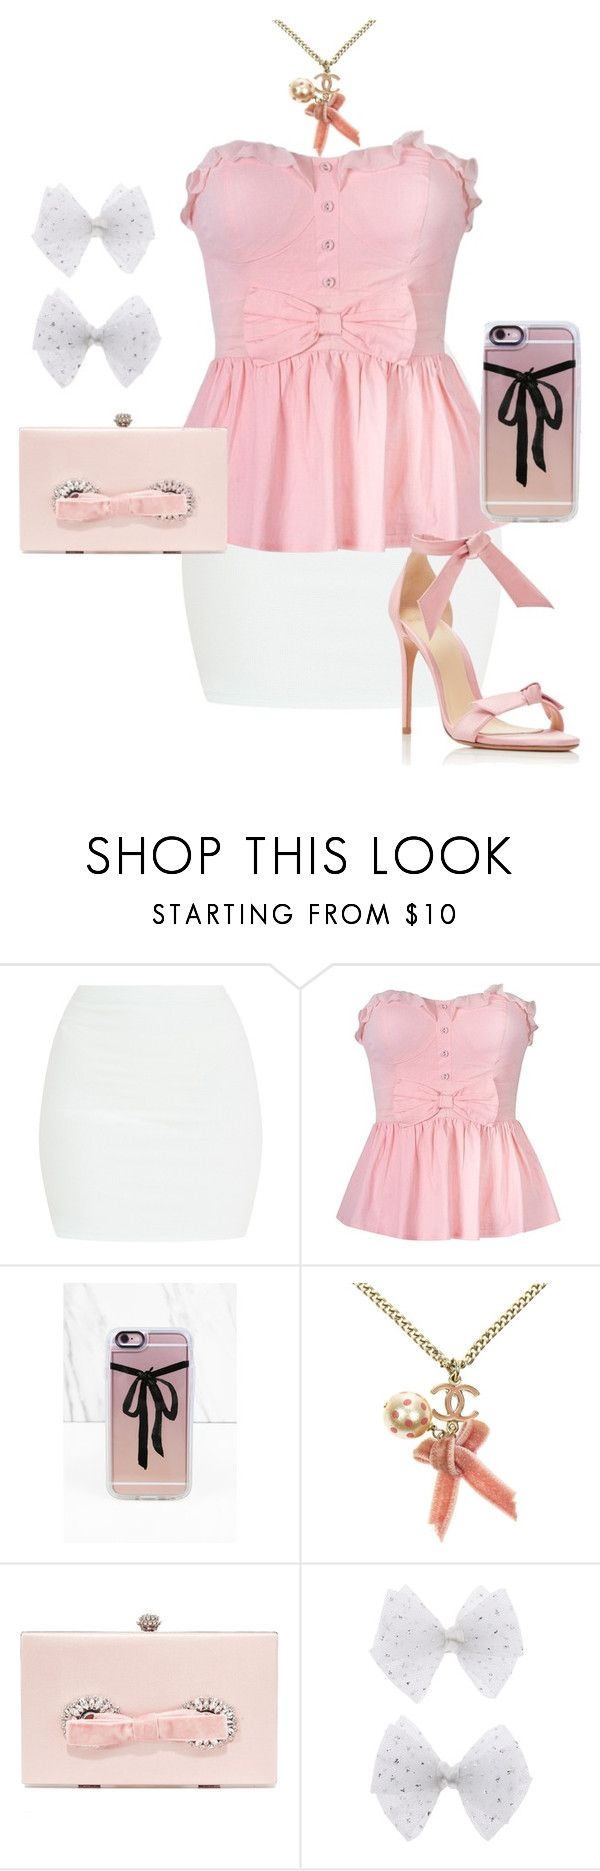 """""""Pink bows"""" by thecyberbat on Polyvore featuring mode, Casetify, Chanel, Badgley Mischka, Monsoon, Alexandre Birman, Pink, bow en dress"""